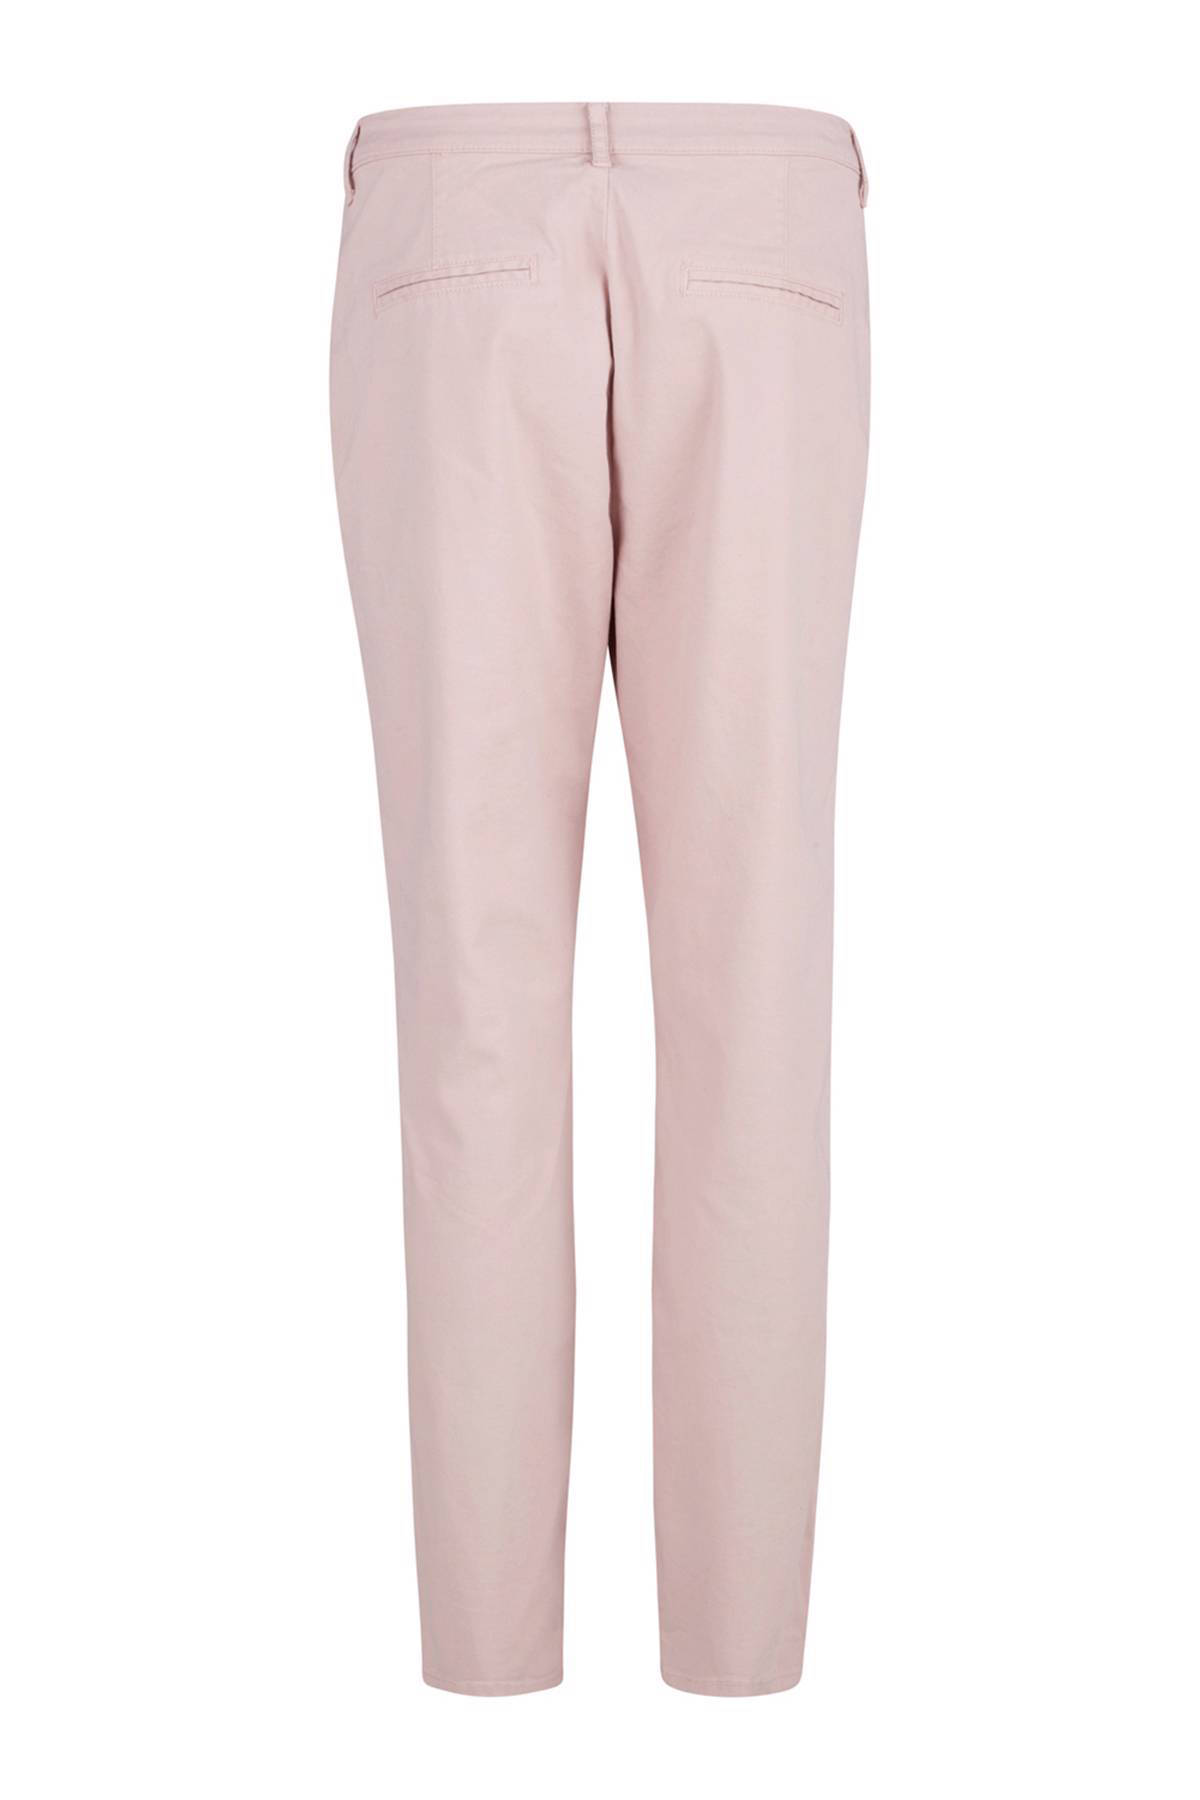 Luna relaxed fit chino lichtroze